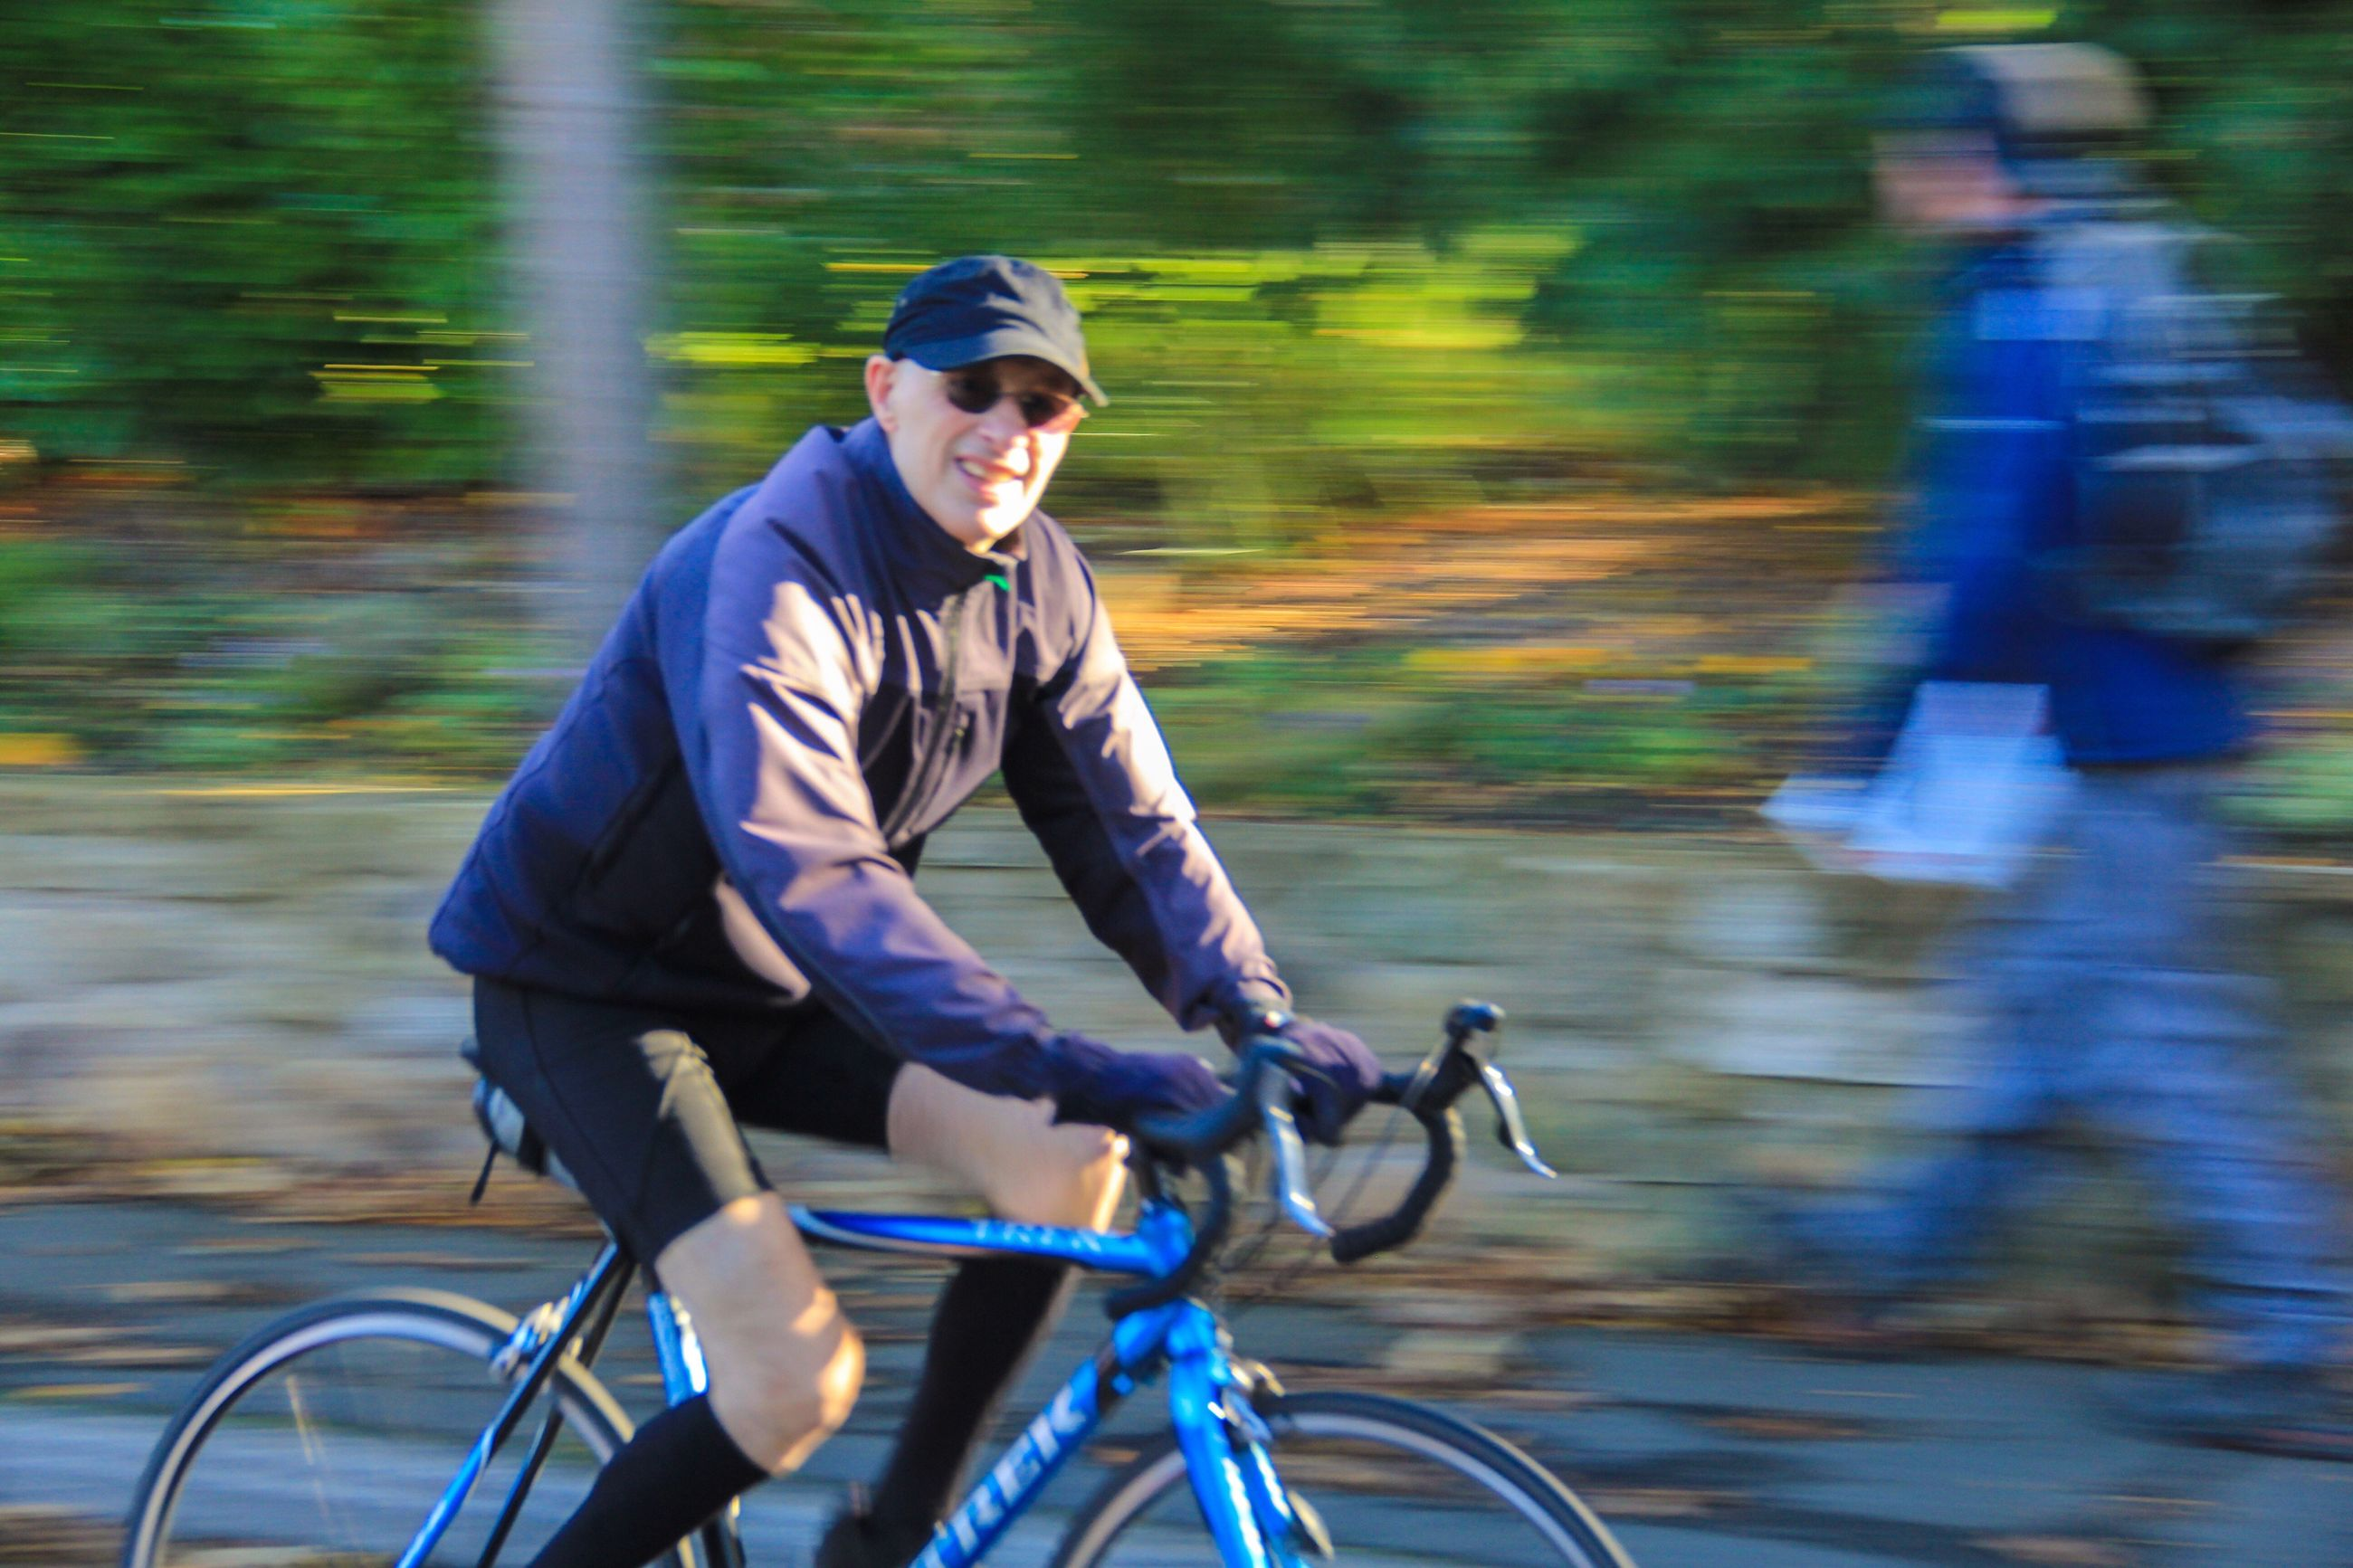 bicycle, cycling, healthy lifestyle, speed, sport, riding, exercising, one man only, one person, only men, sports clothing, outdoors, adults only, recreational pursuit, motion, athlete, blurred motion, adventure, people, adult, sports training, sportsman, day